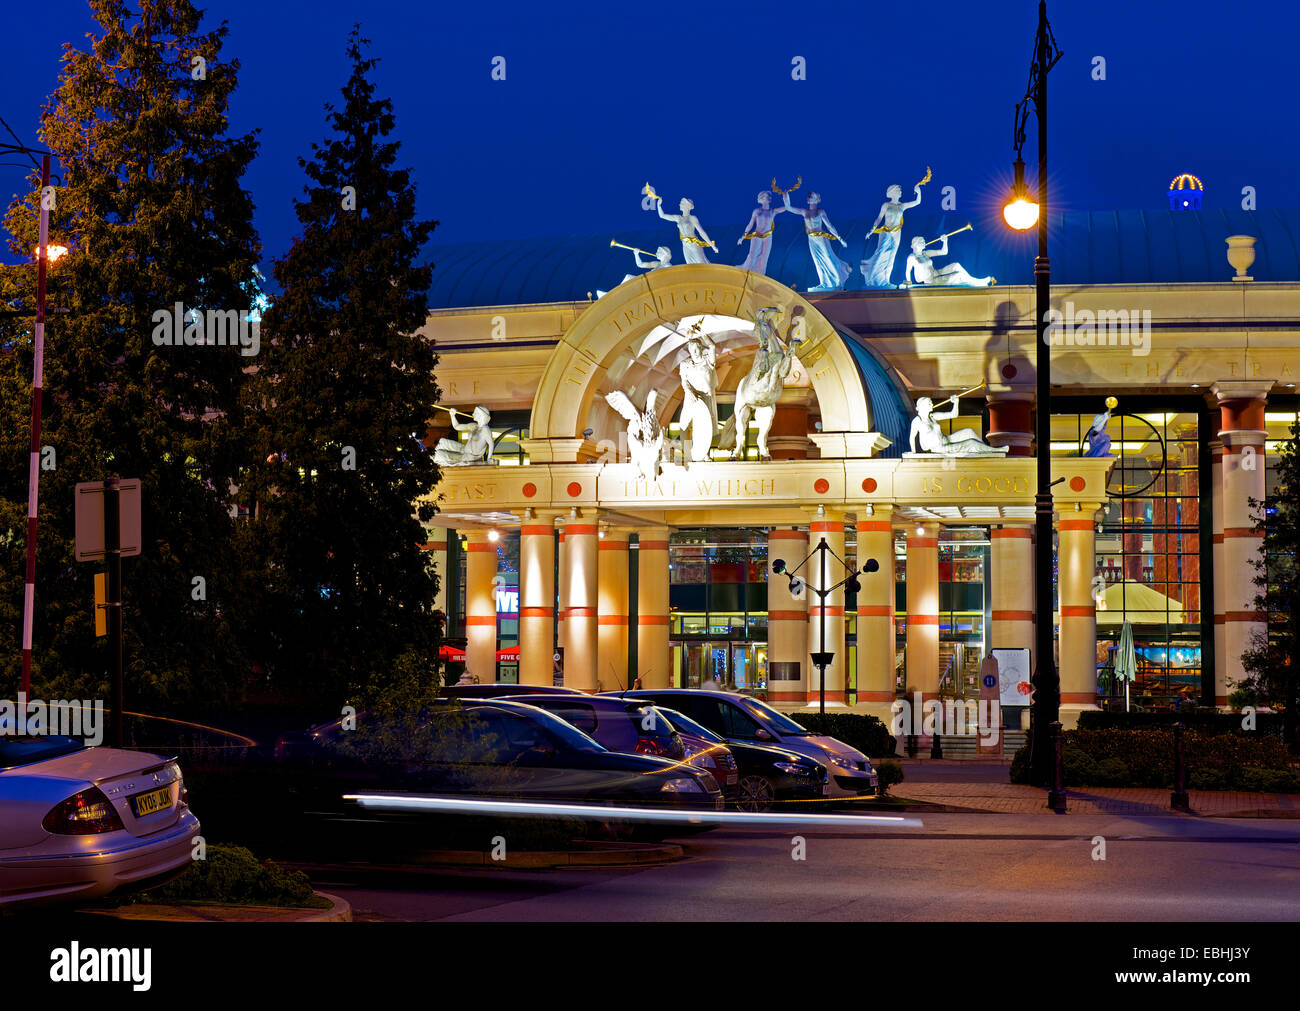 Trafford Centre shopping mall, Manchester, England UK - Stock Image